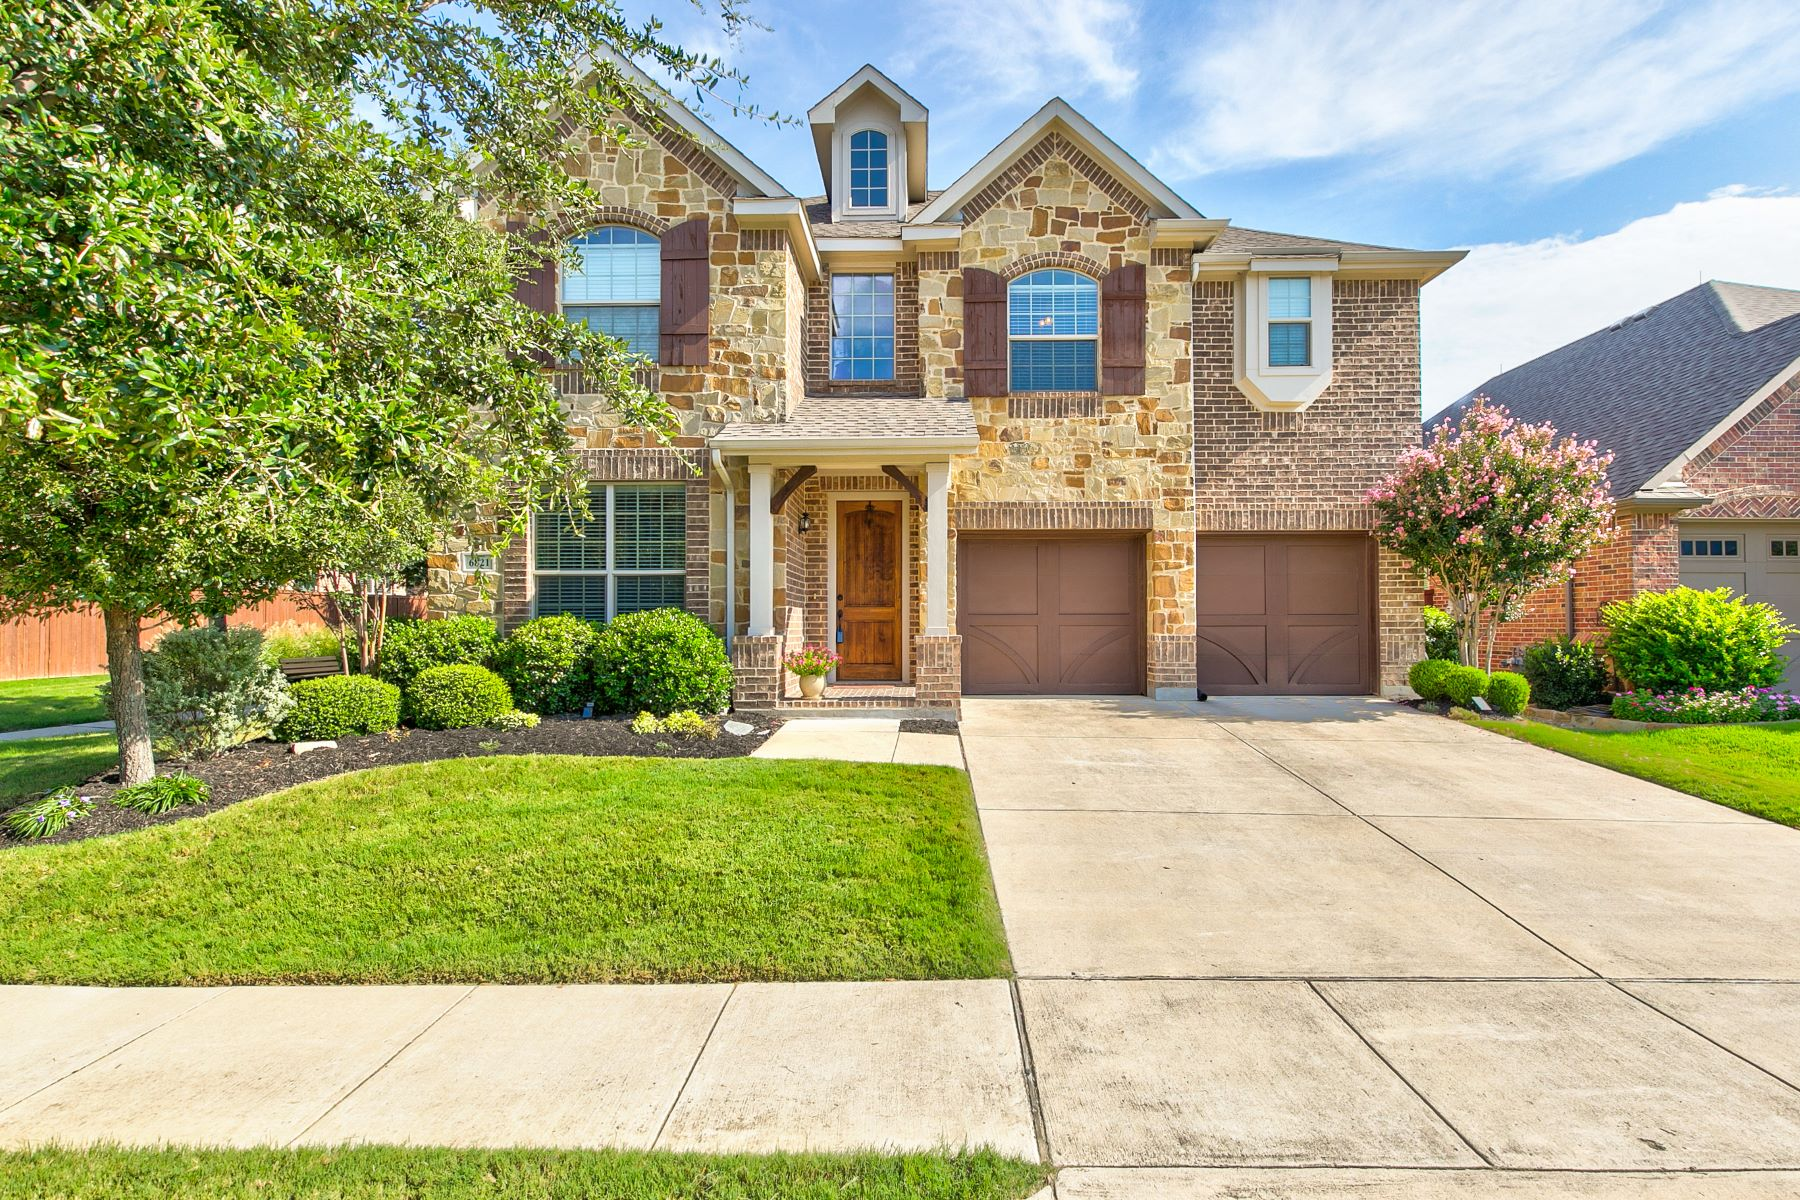 Single Family Homes for Sale at 6821 Swallow Lane, North Richland Hills, TX, 76182 6821 Swallow Lane North Richland Hills, Texas 76182 United States